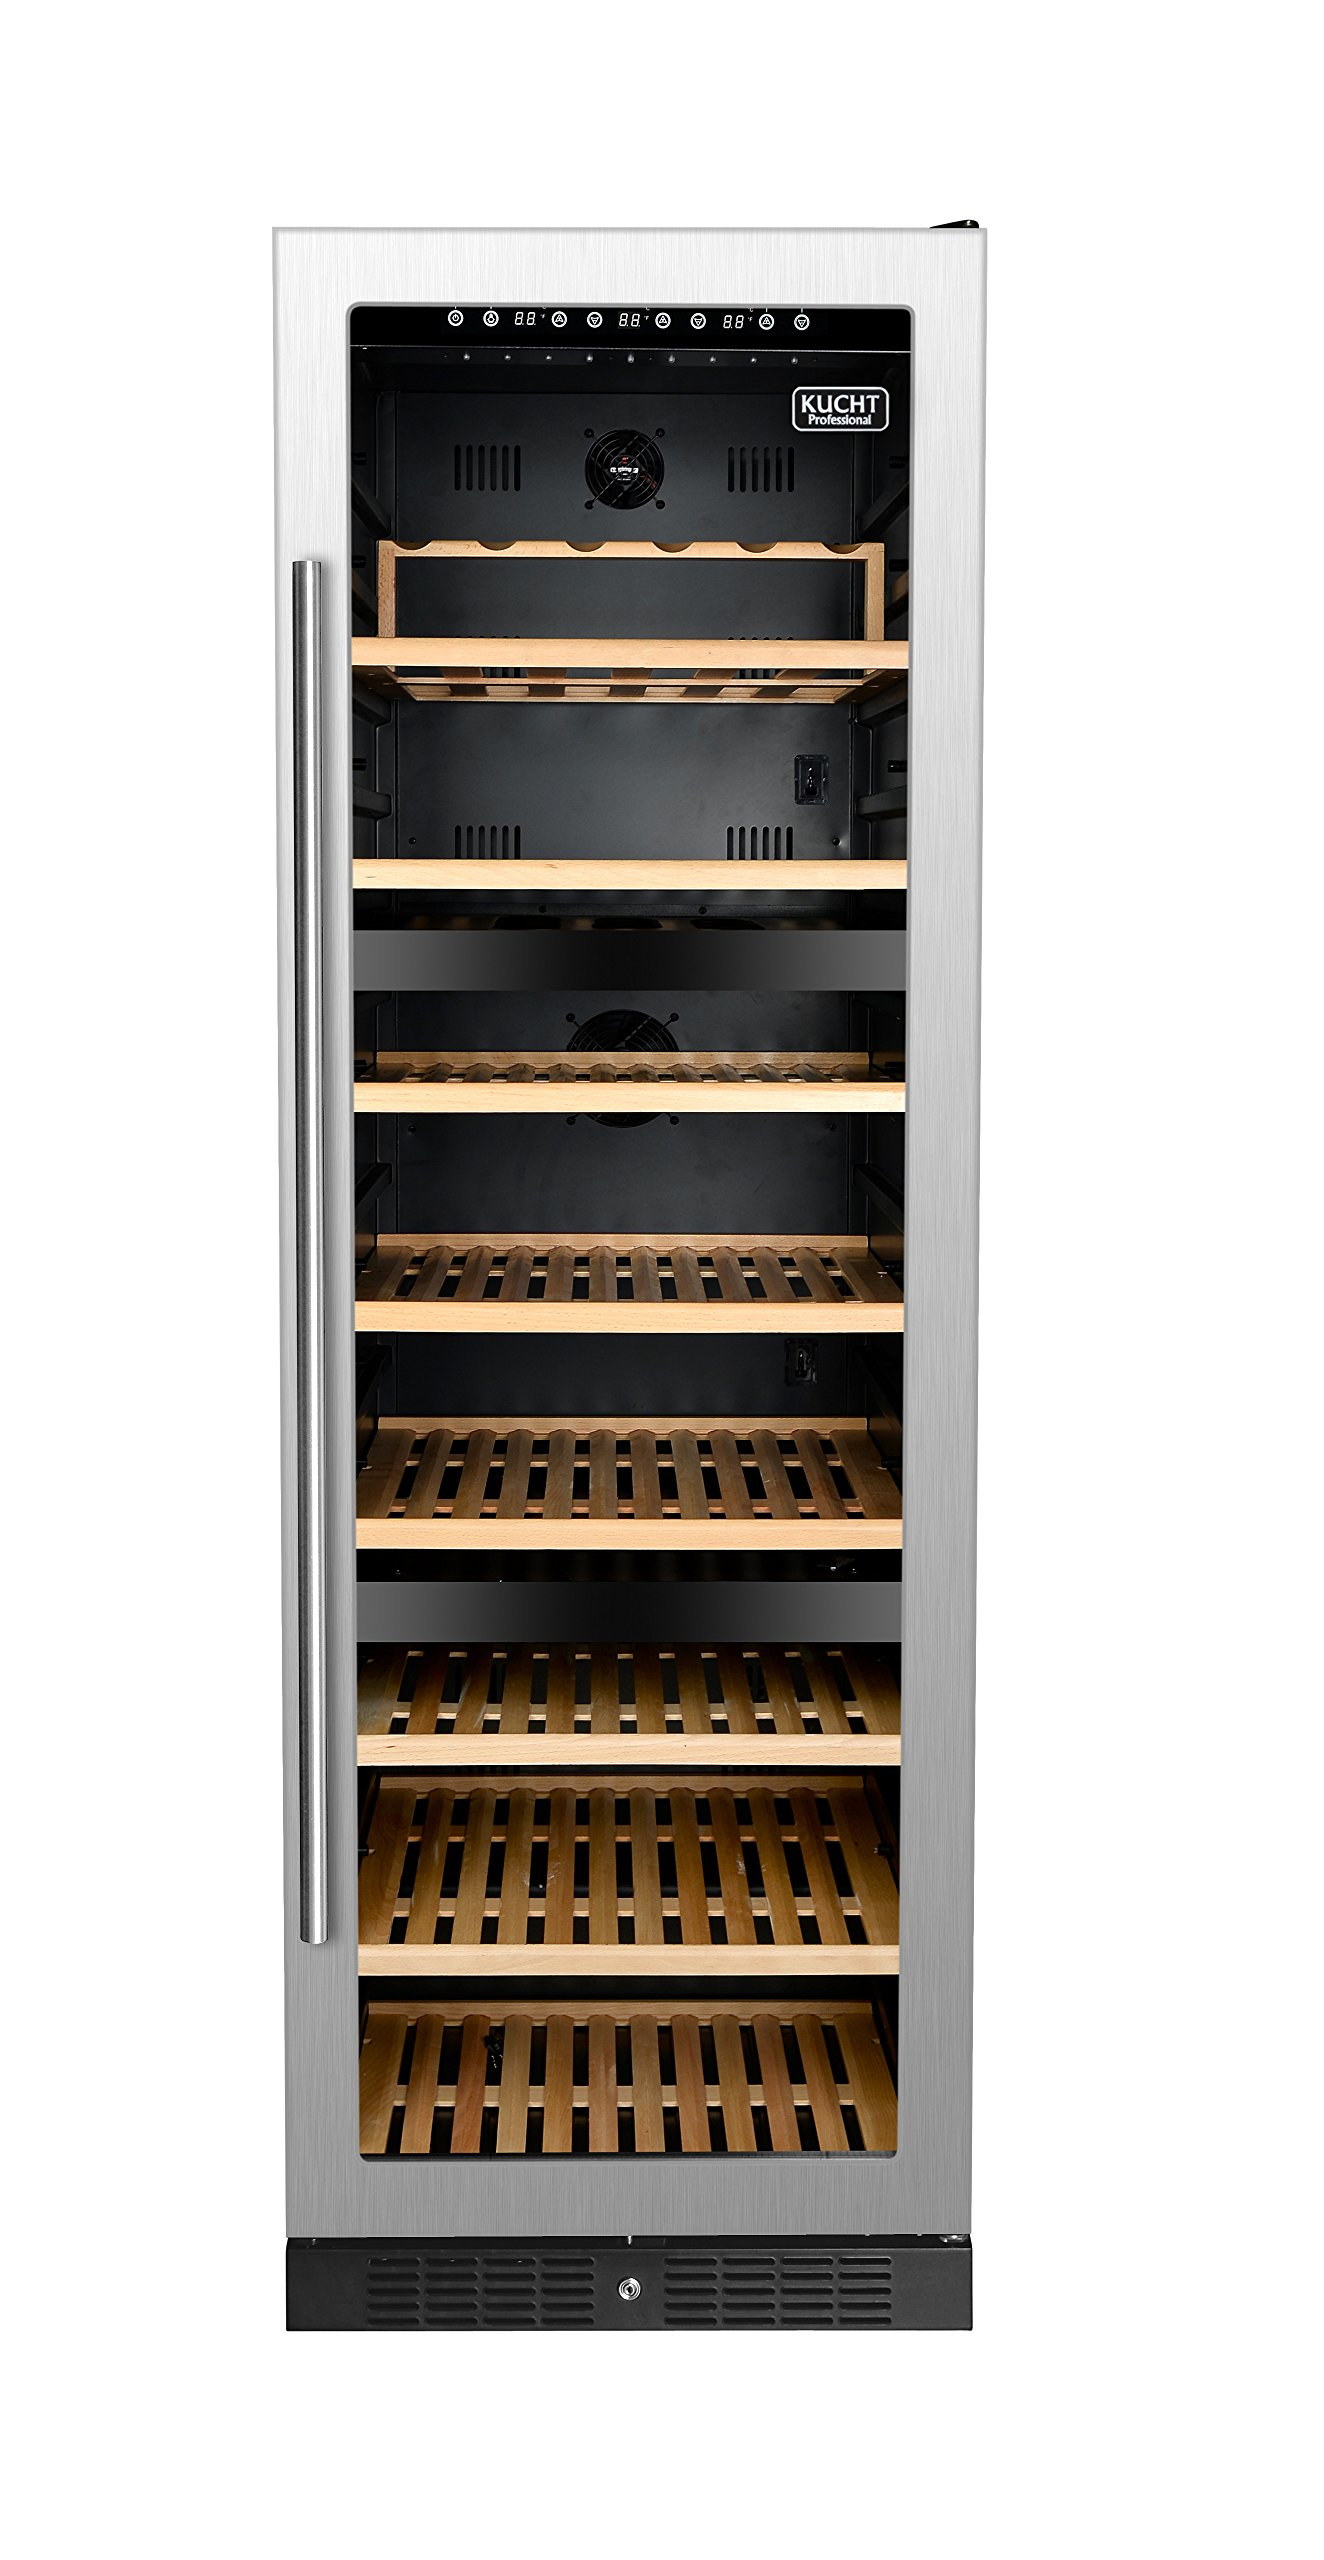 KUCHT Professional 177-Bottle Dual Zone Wine Cooler Built-in with Compressor in Stainless Steel